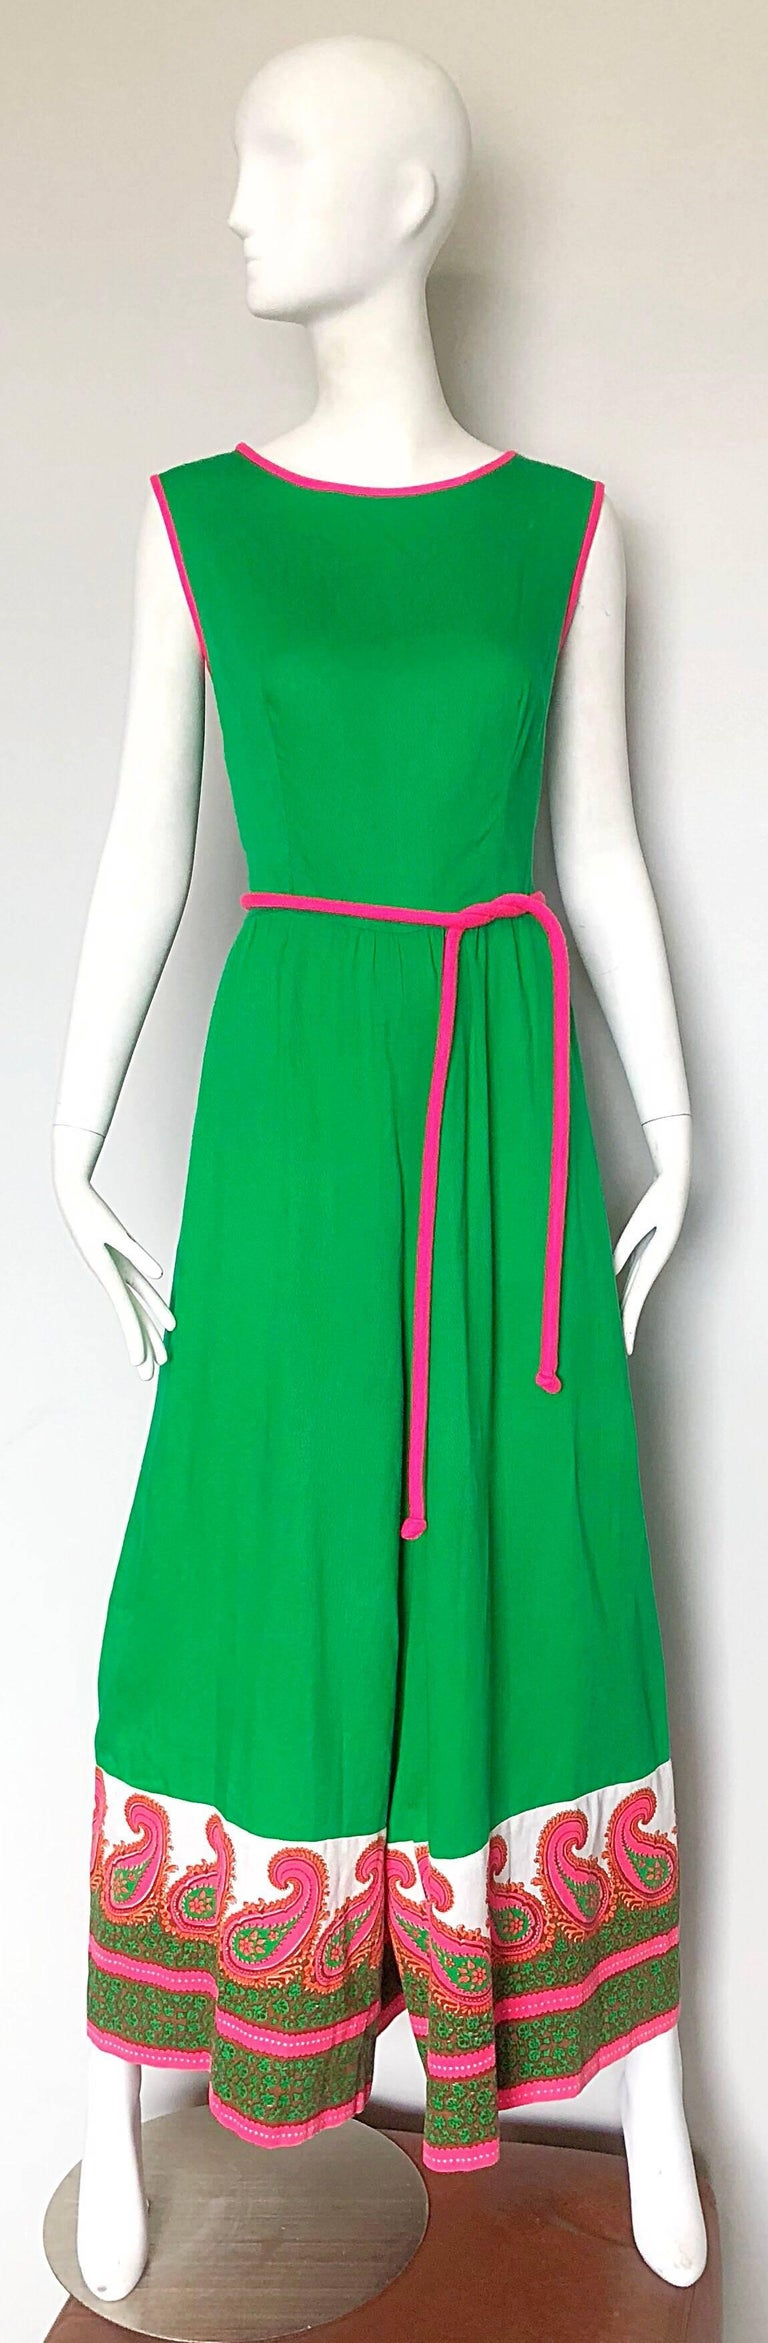 Alfred Shaheen 1960s Large Size Kelly Green + Pink Vintage 60s Palazzo Jumpsuit For Sale 5